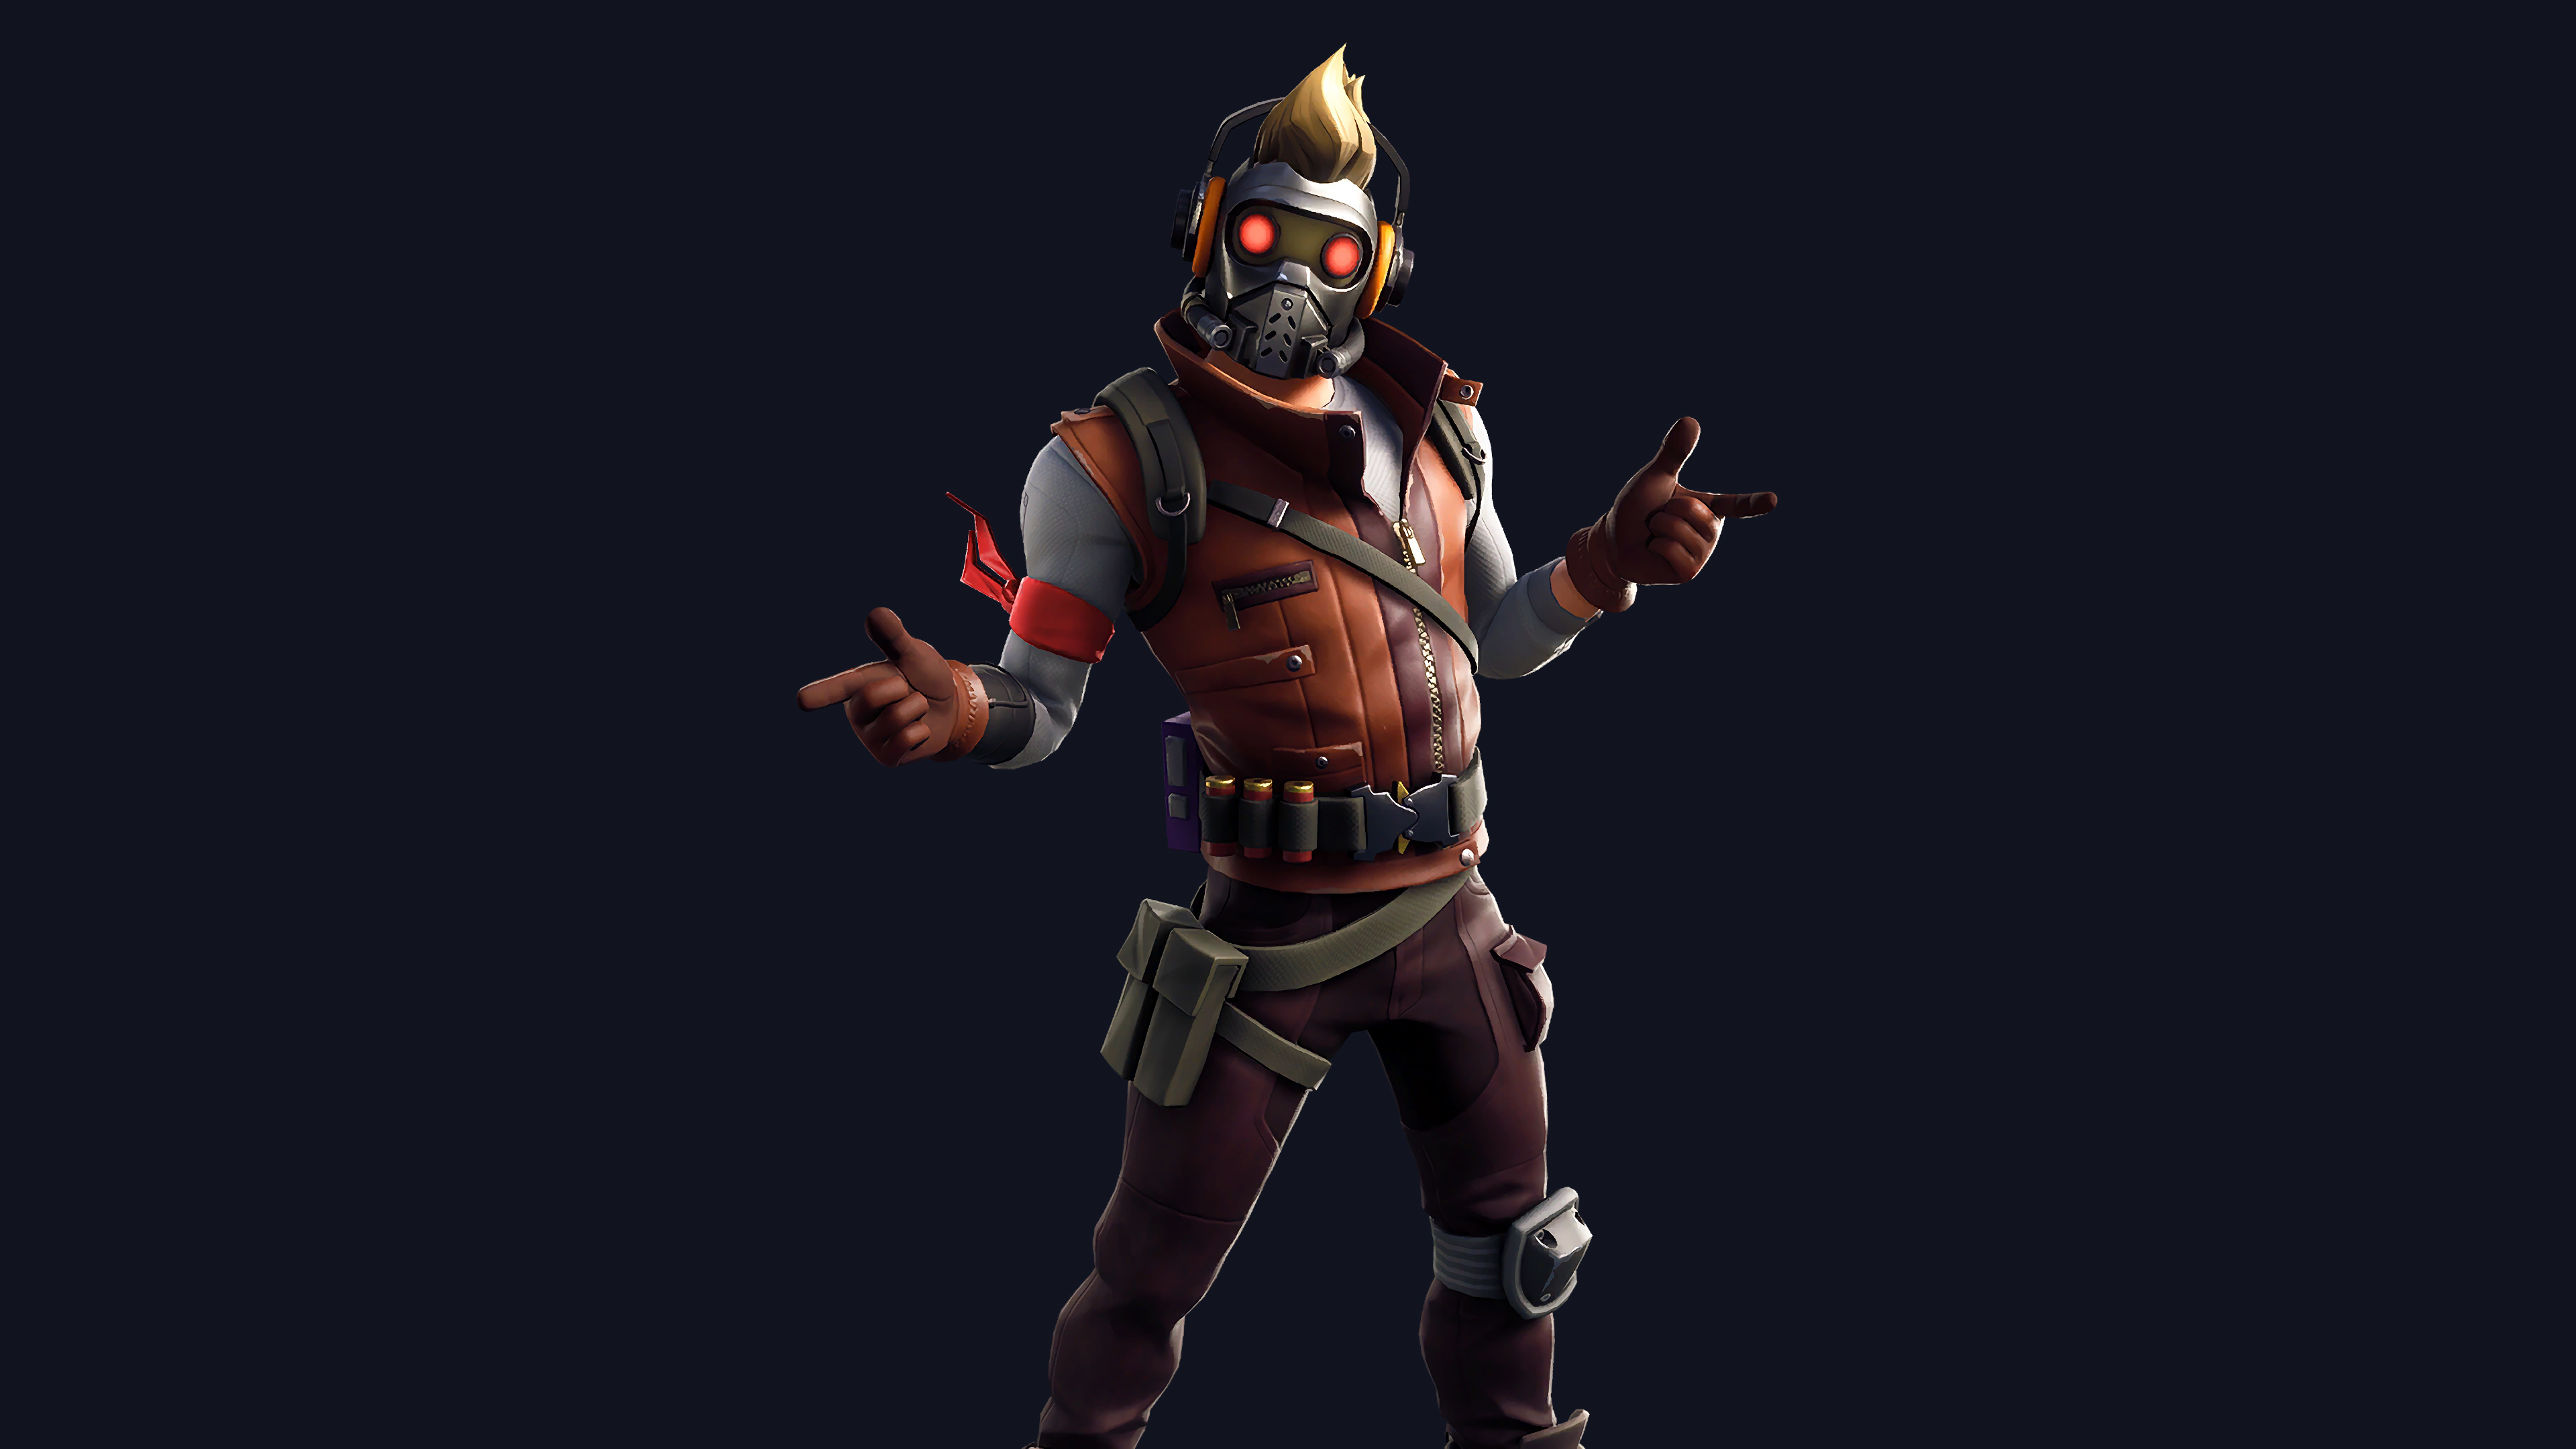 Fortnite Star Lord Skin Fondo De Pantalla 4k Ultra Hd Id3757